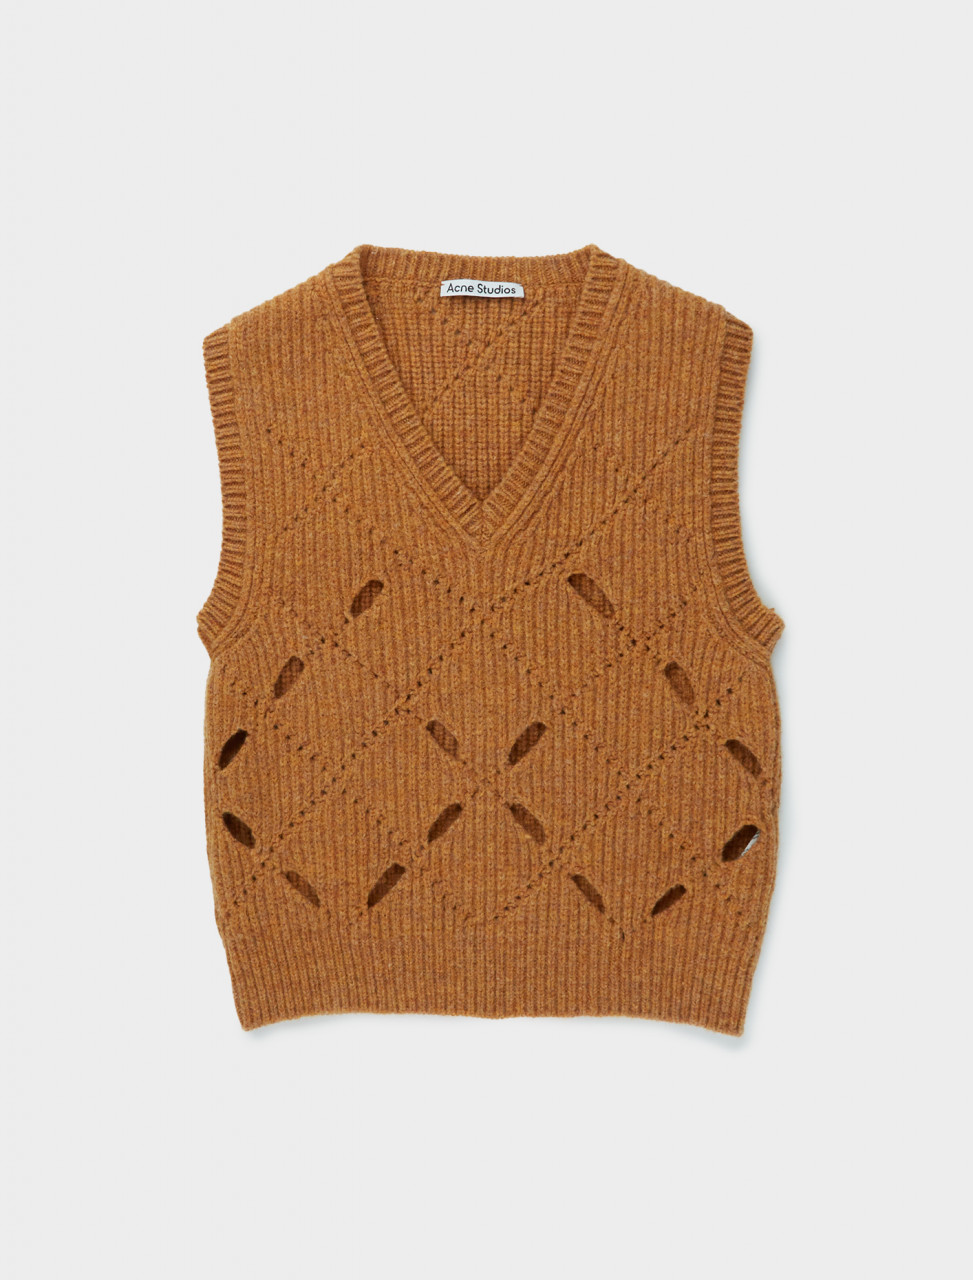 110-A60200-295 ACNE STUDIOS ARGYLE WOOL GILET IN COGNAC BROWN